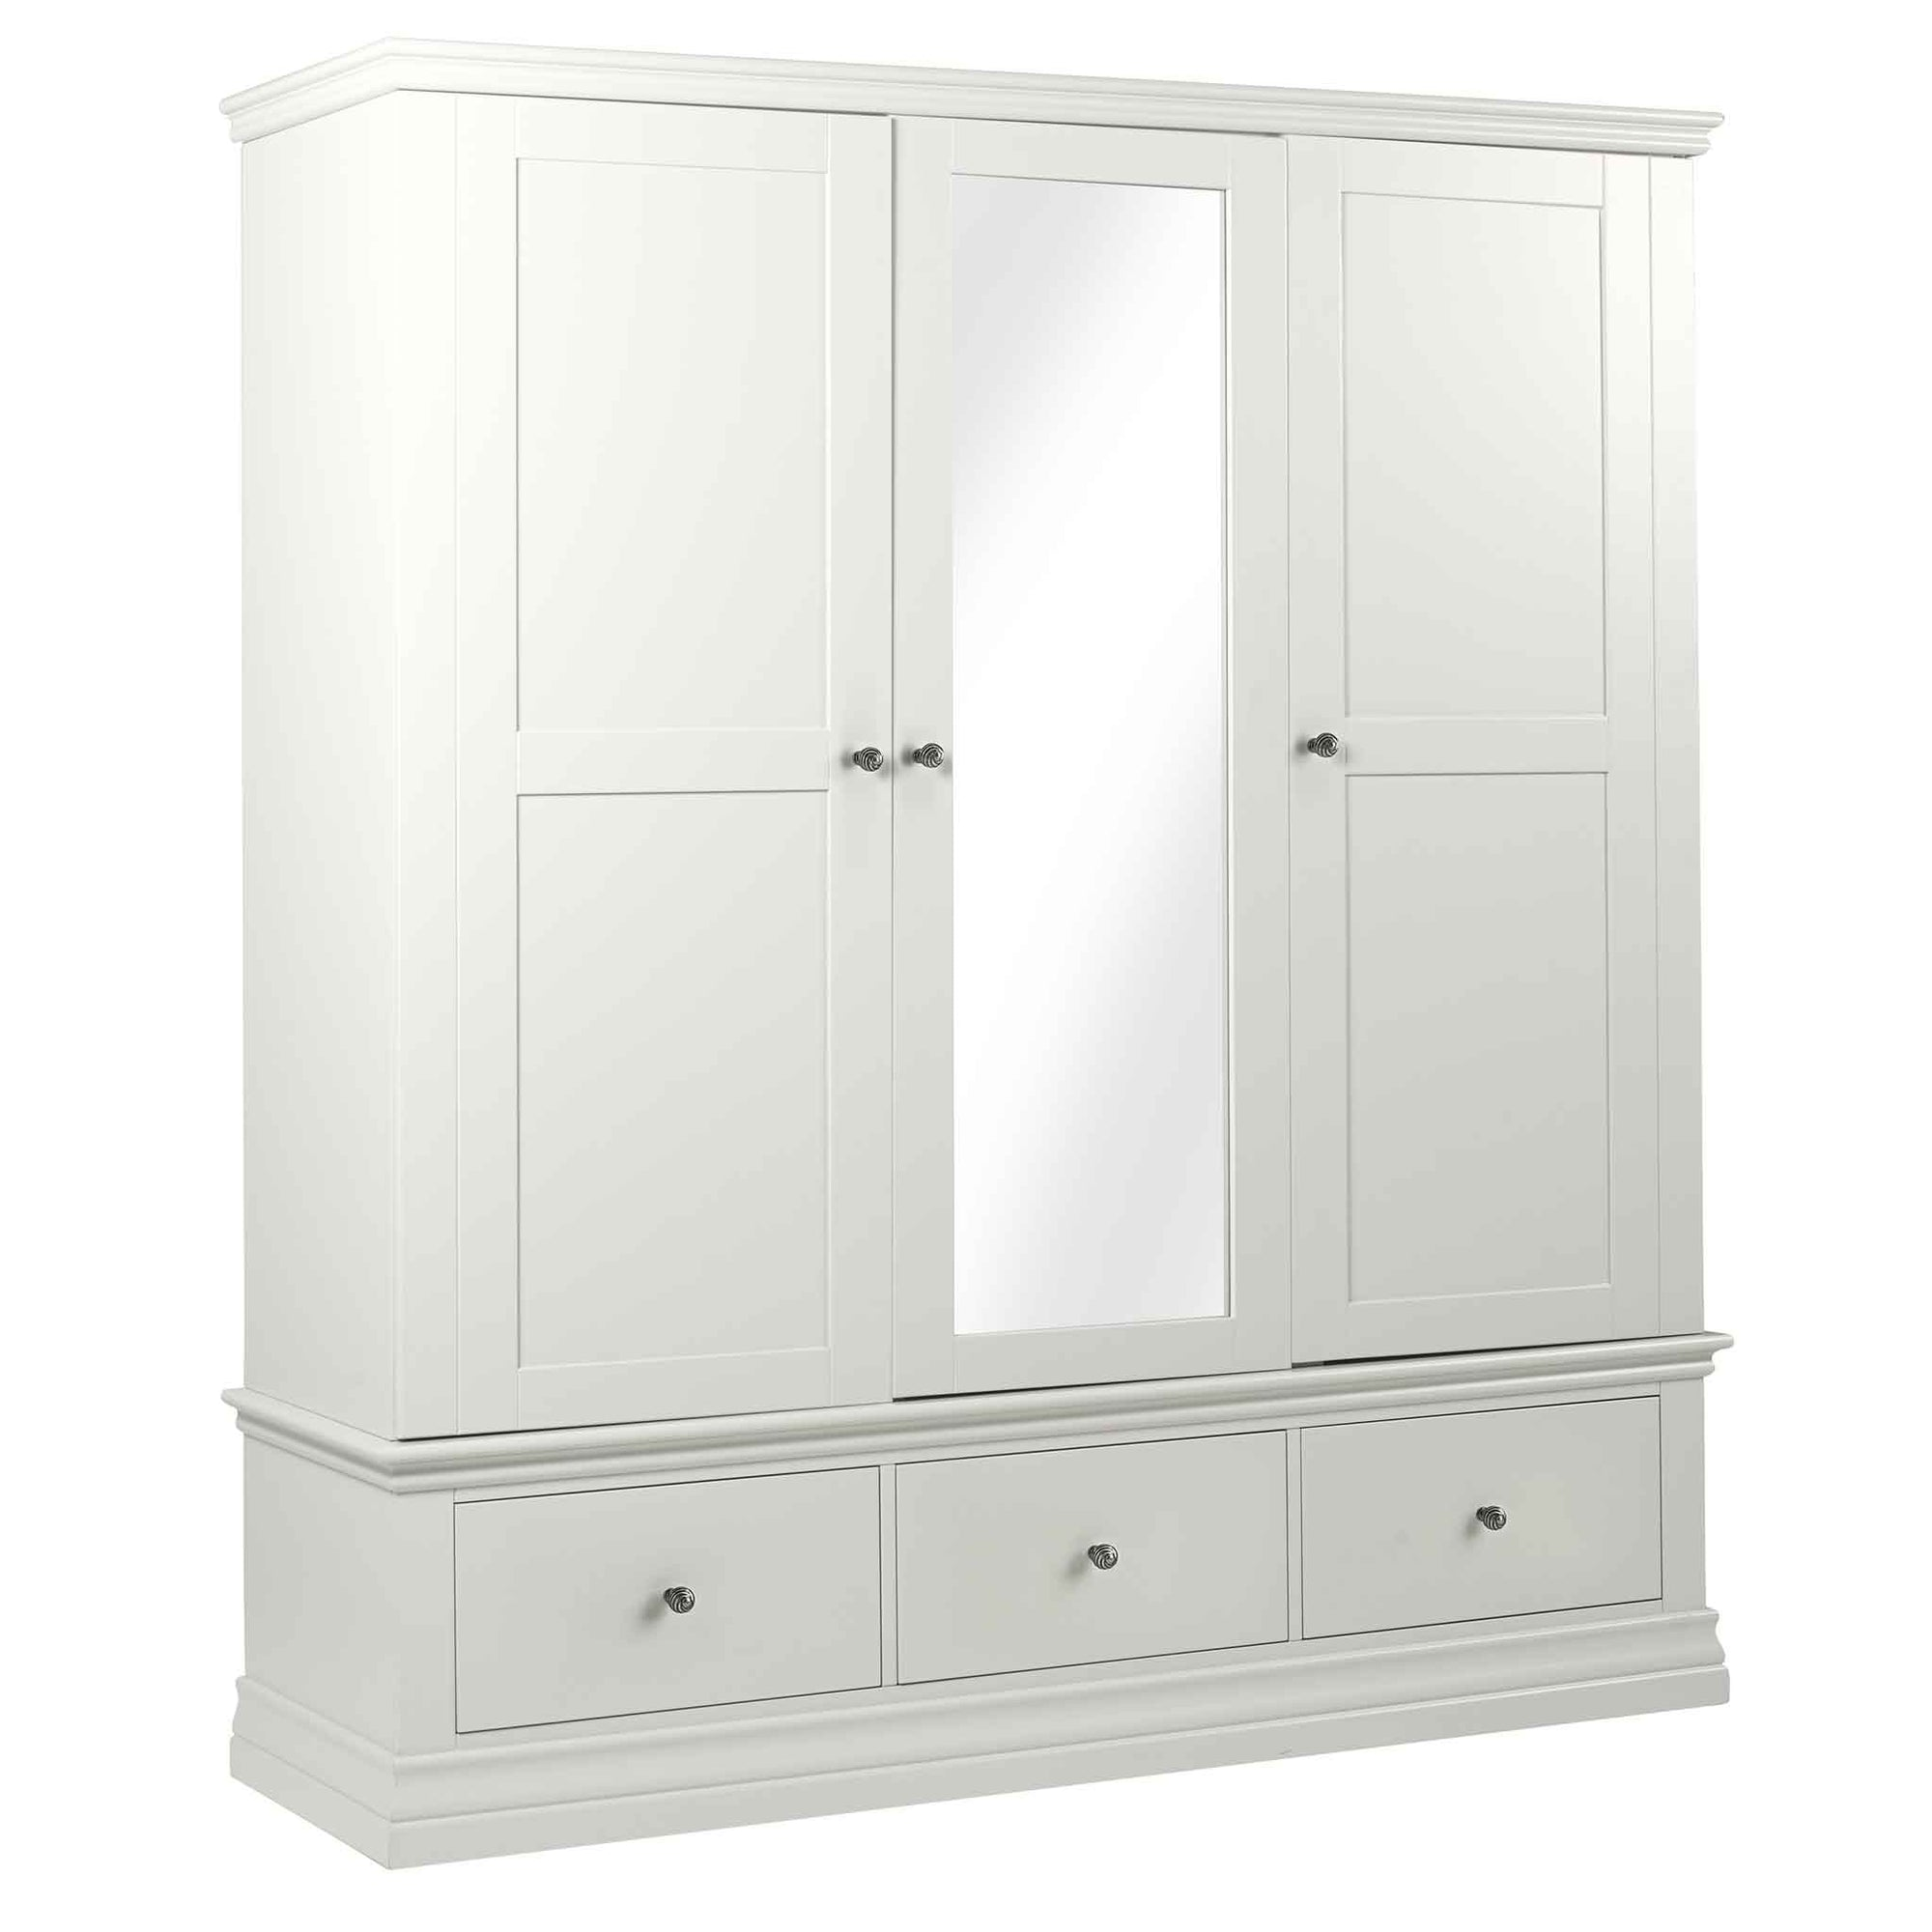 Melrose White Triple Wardrobe with Mirror and Drawers from Roseland Furniture